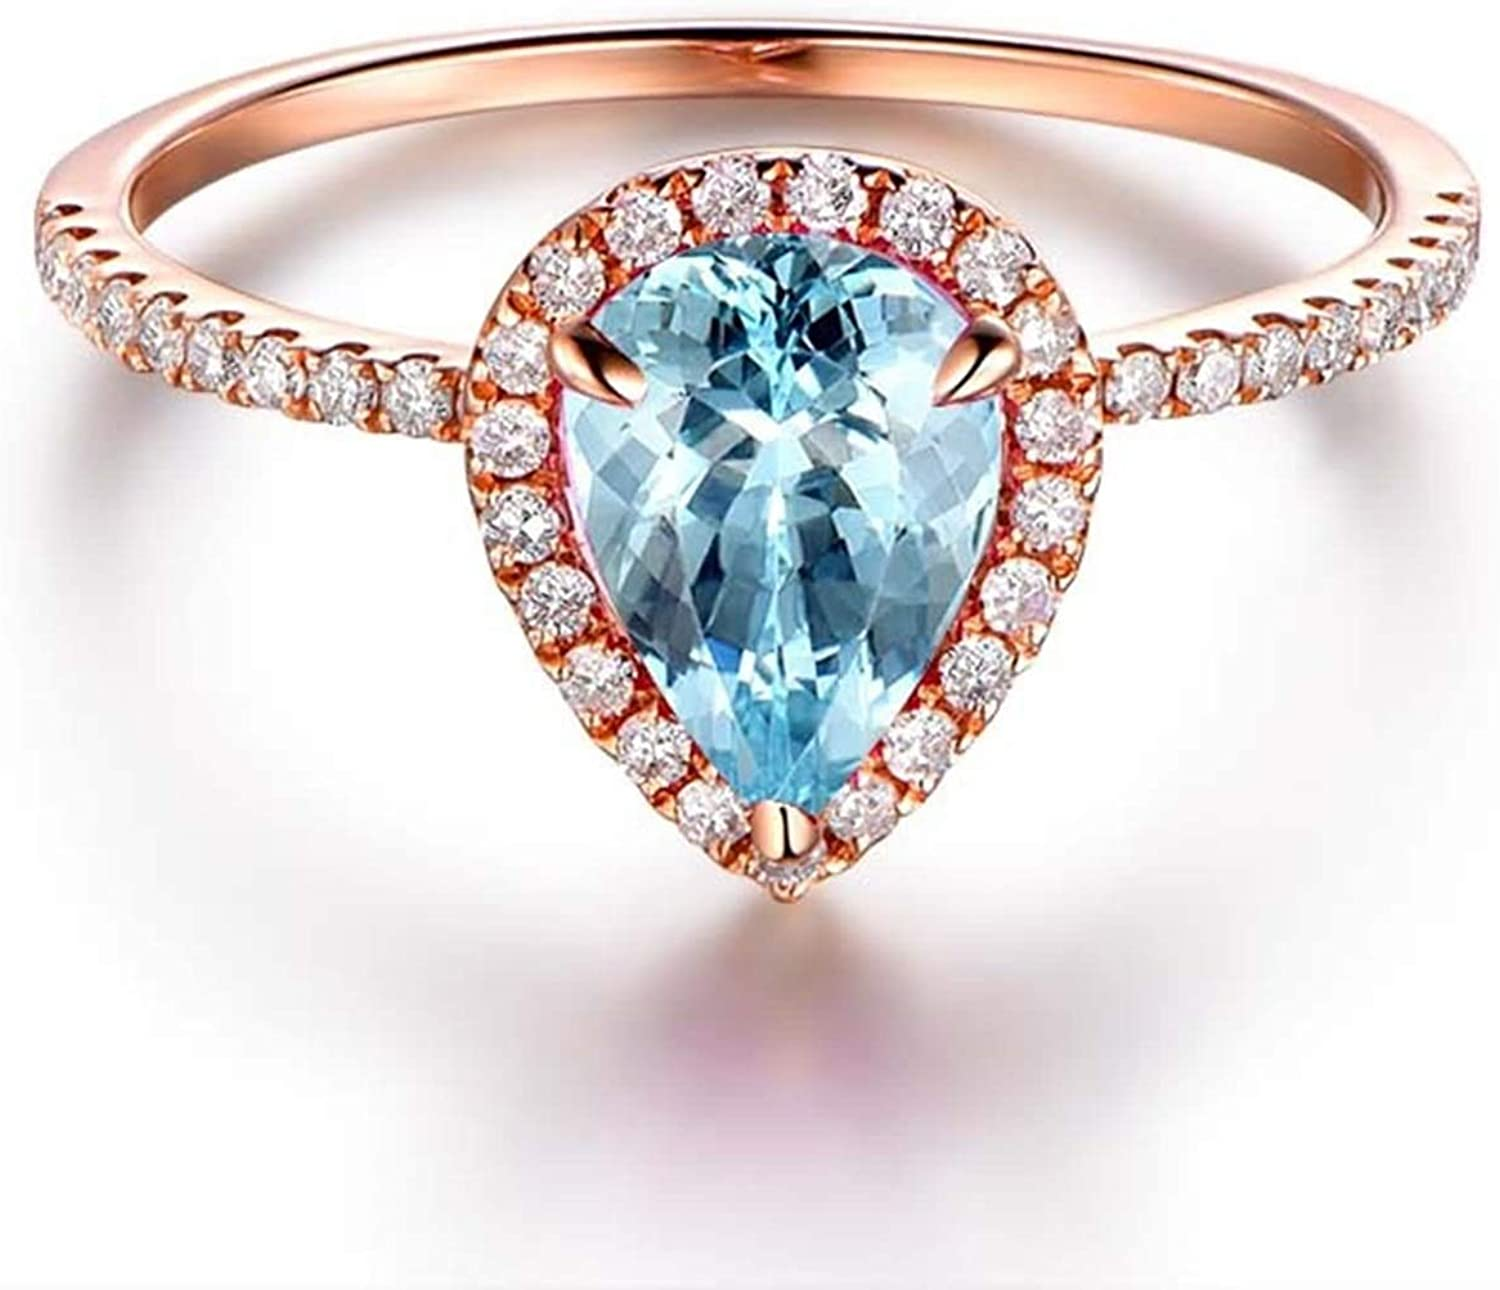 AMDXD Jewelry 925 Sterling Silver Rings Women Blue Round Cut Topaz Round Ring